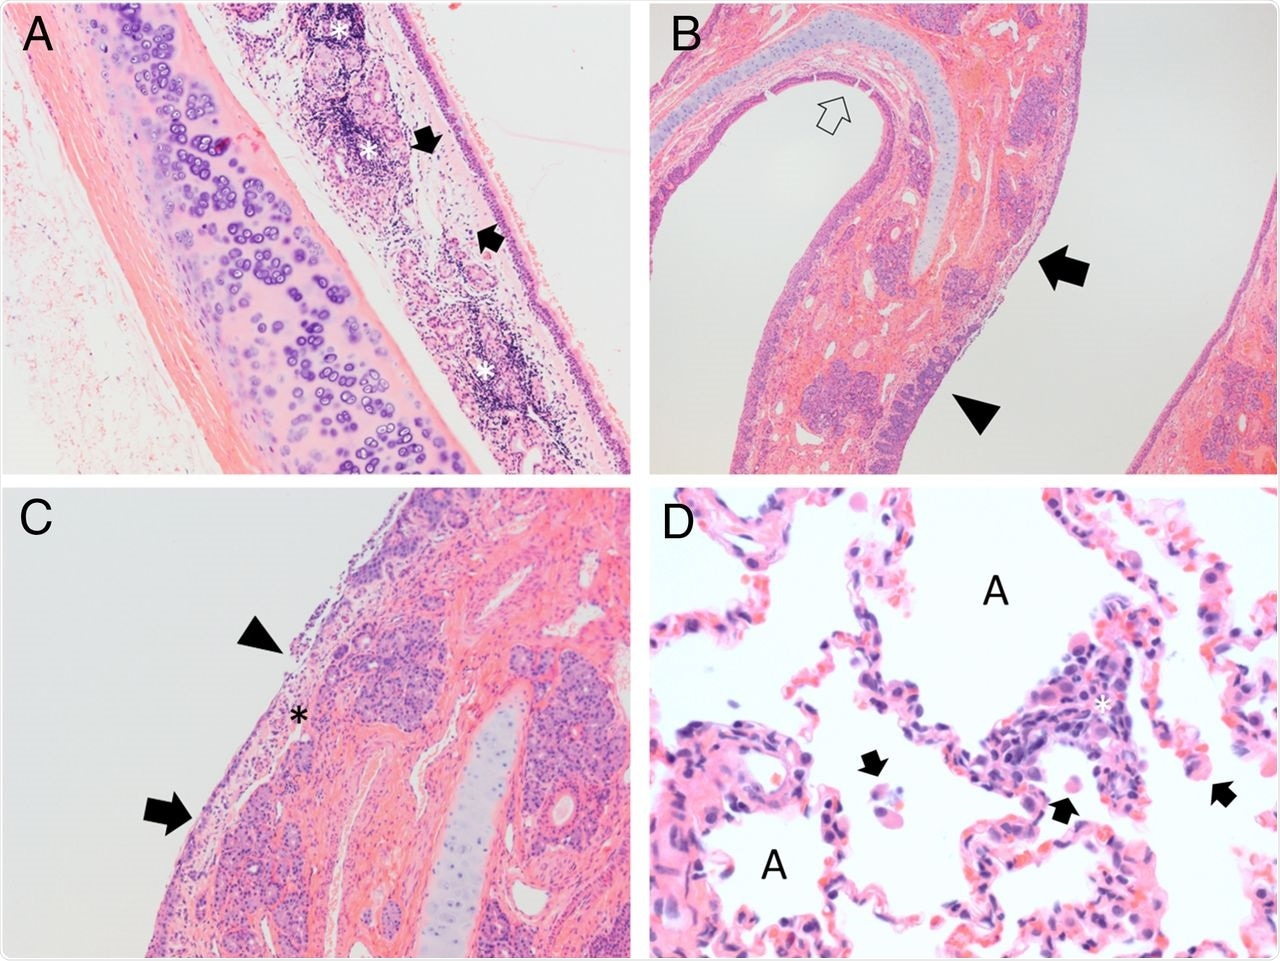 """SARS-CoV-2 exposure results in acute upper respiratory inflammation and mild lung infiltrates during later courses of infection. (A) Cat 4, cohort 2, trachea 5 DPI. The submucosa is expanded by edema (arrows) and abundant lymphocytic inflammatory infiltrates (asterisks) which dissect and disrupt submucosal glands. H&E stain, 100× magnification. (B) Cat 5, cohort 2, nasal turbinates, 5 DPI. Normal thickness respiratory mucosa is present in the section (open arrow). Nasal respiratory epithelium ranges from hyperplastic (filled black arrow) to ulcerated (arrowhead). The submucosa in regions of ulceration is edematous and infiltrated by scattered neutrophils and mononuclear cells. H&E stain, 40× magnification. (C) Cat 5, cohort 2, nasal turbinates, 5 DPI. Nasal respiratory epithelium ranges from attenuated (arrow) to ulcerated (arrowhead) with overlying remnant cellular debris. The submucosa (asterisk) in regions of ulceration is edematous and infiltrated by scattered neutrophils and mononuclear cells. H&E stain, 100× magnification. (D) Cat 1, cohort 1, lung, 42 DPI. Alveolar spaces (""""A"""") contain scattered mononuclear cells (arrows). The alveolar wall is expanded by mixtures of mononuclear cells and occasional neutrophils (asterisk). H&E stain, 400× magnification."""